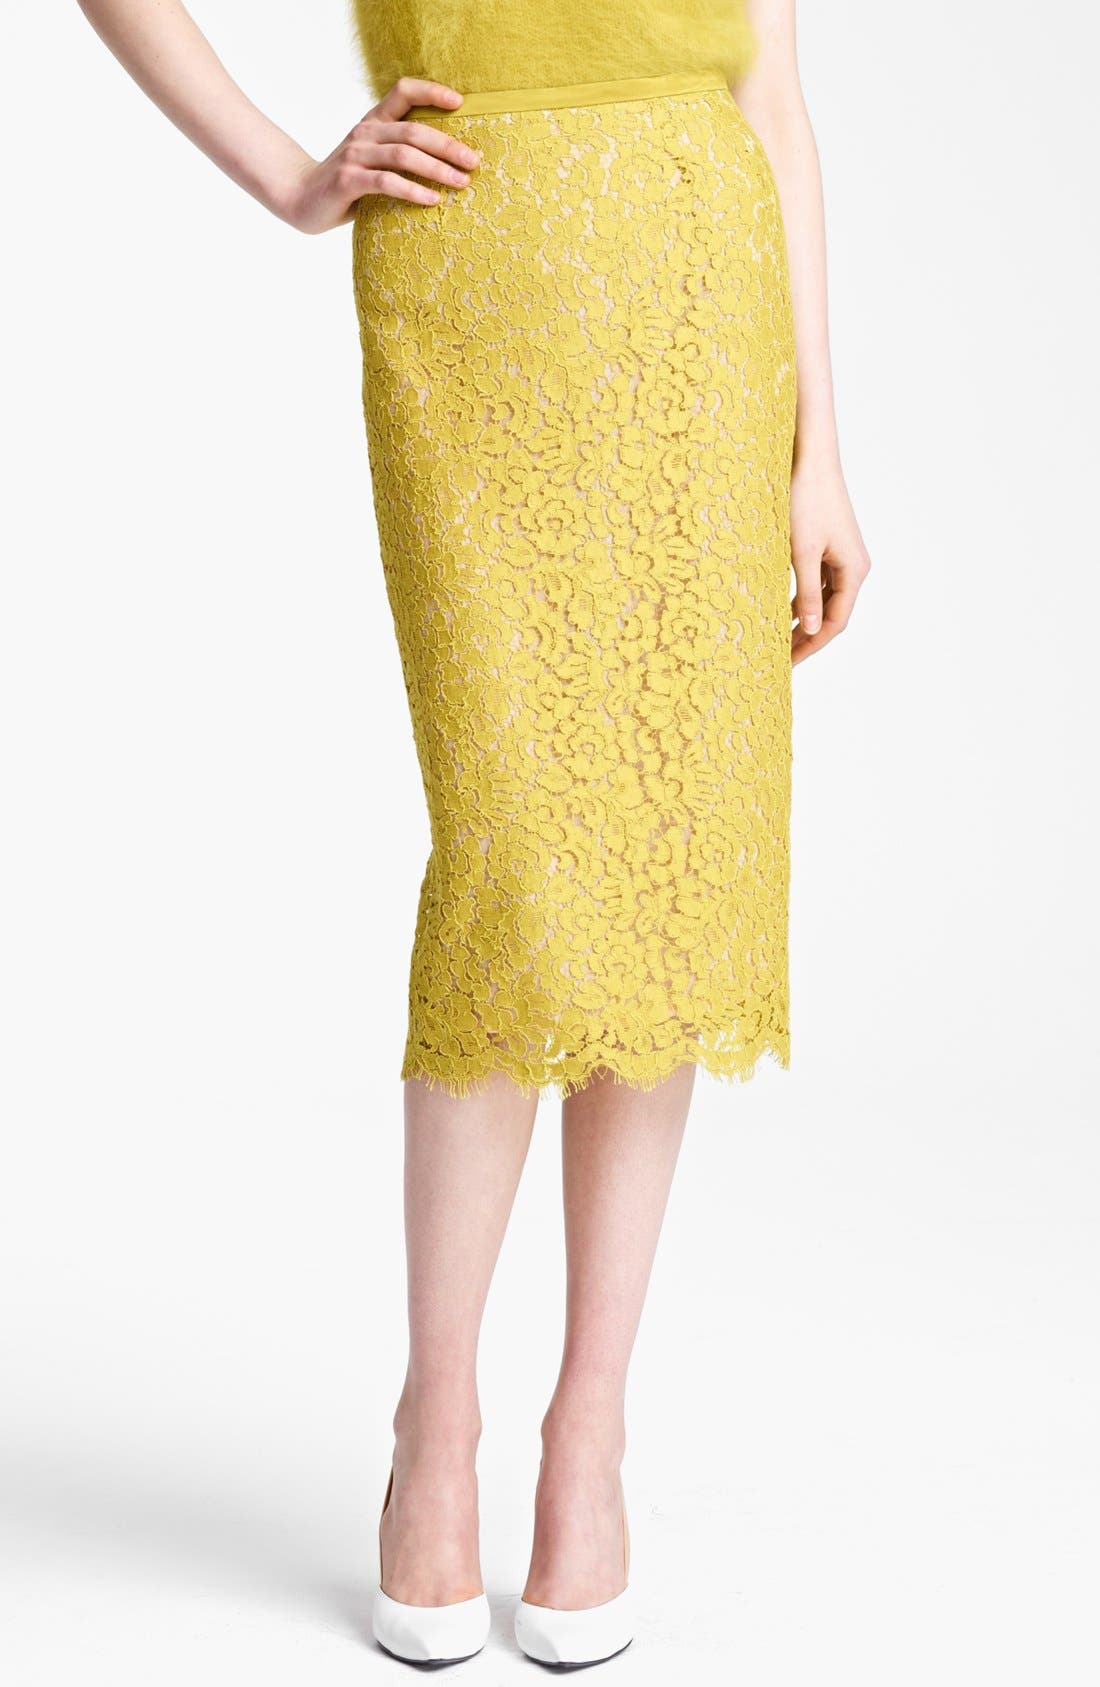 Alternate Image 1 Selected - Michael Kors Floral Lace Pencil Skirt